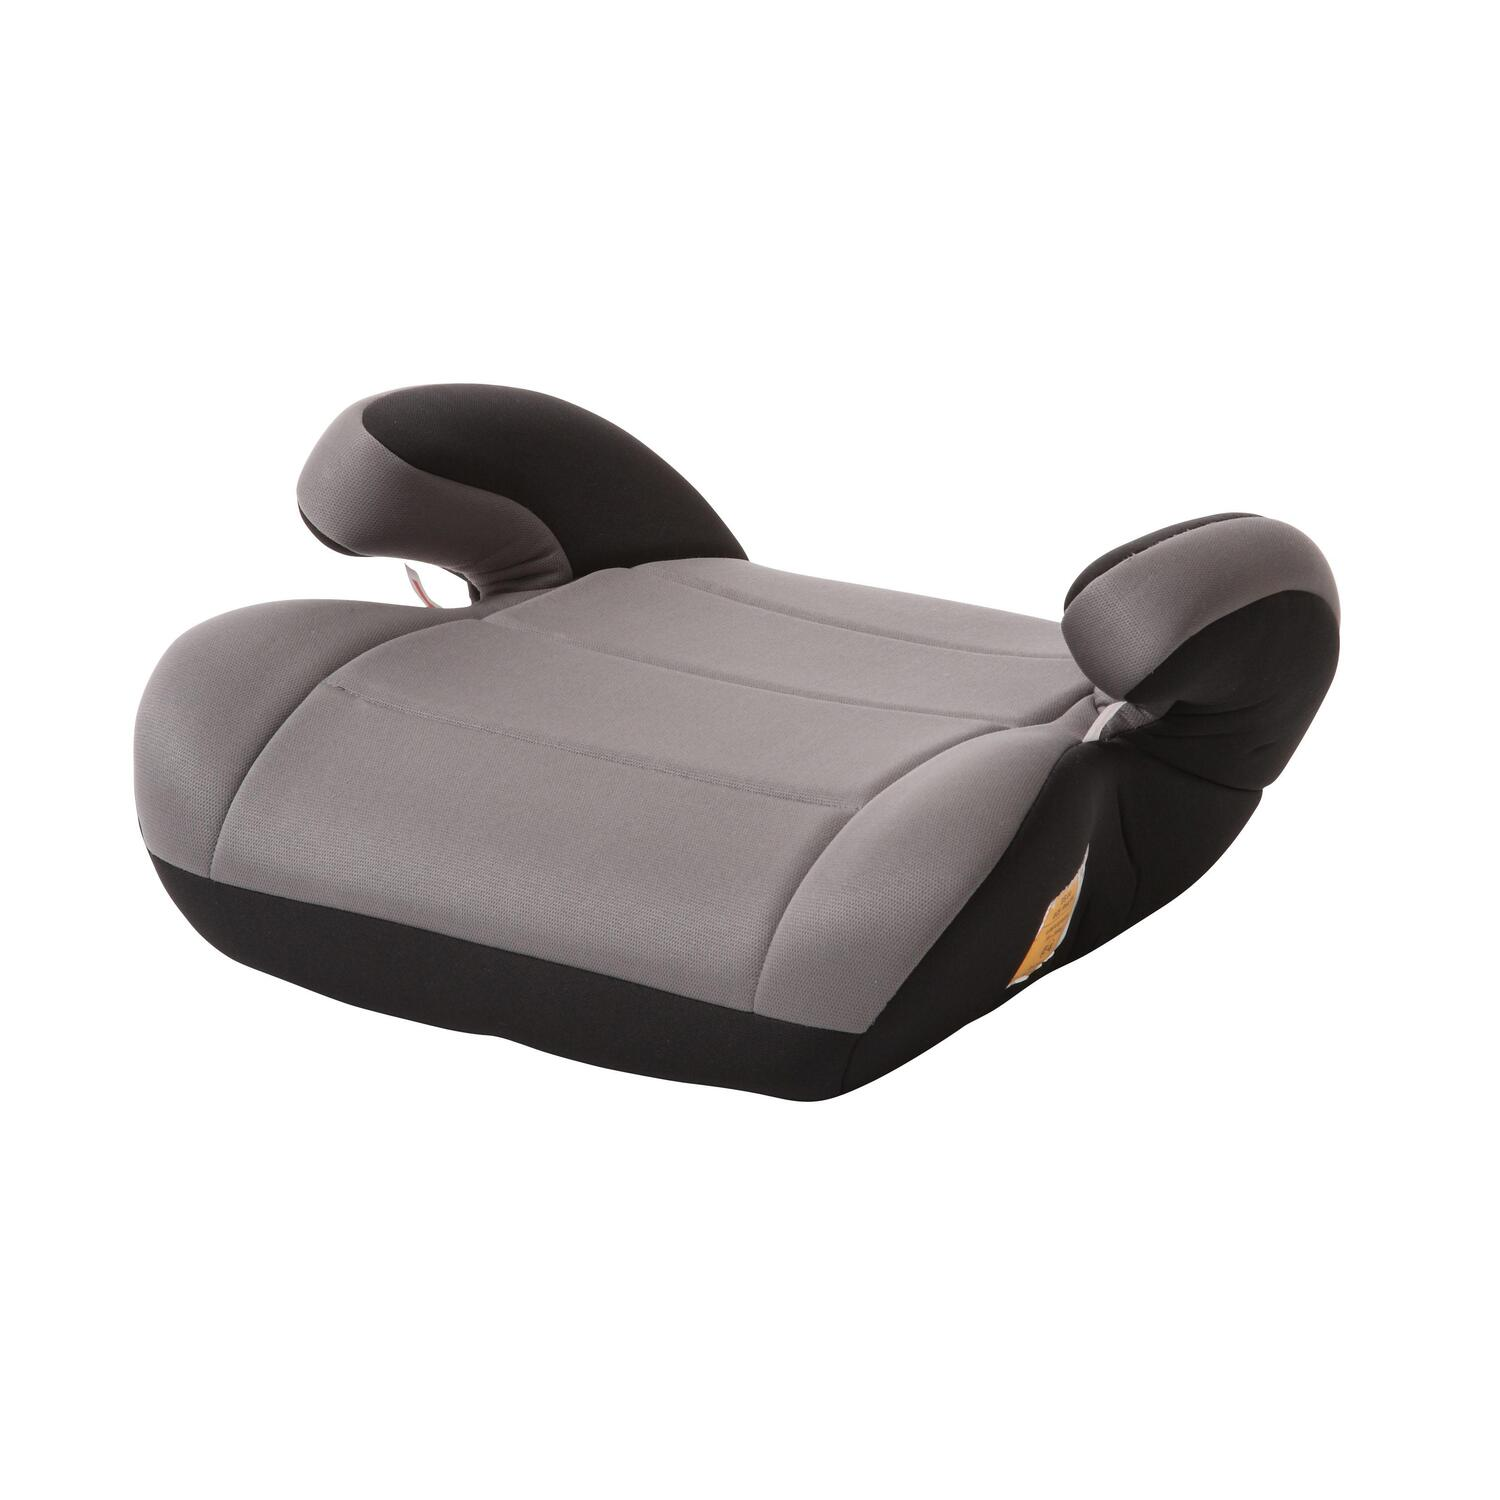 booster seat or high chair which is better small desk chairs cosco top side car leo ojcommerce